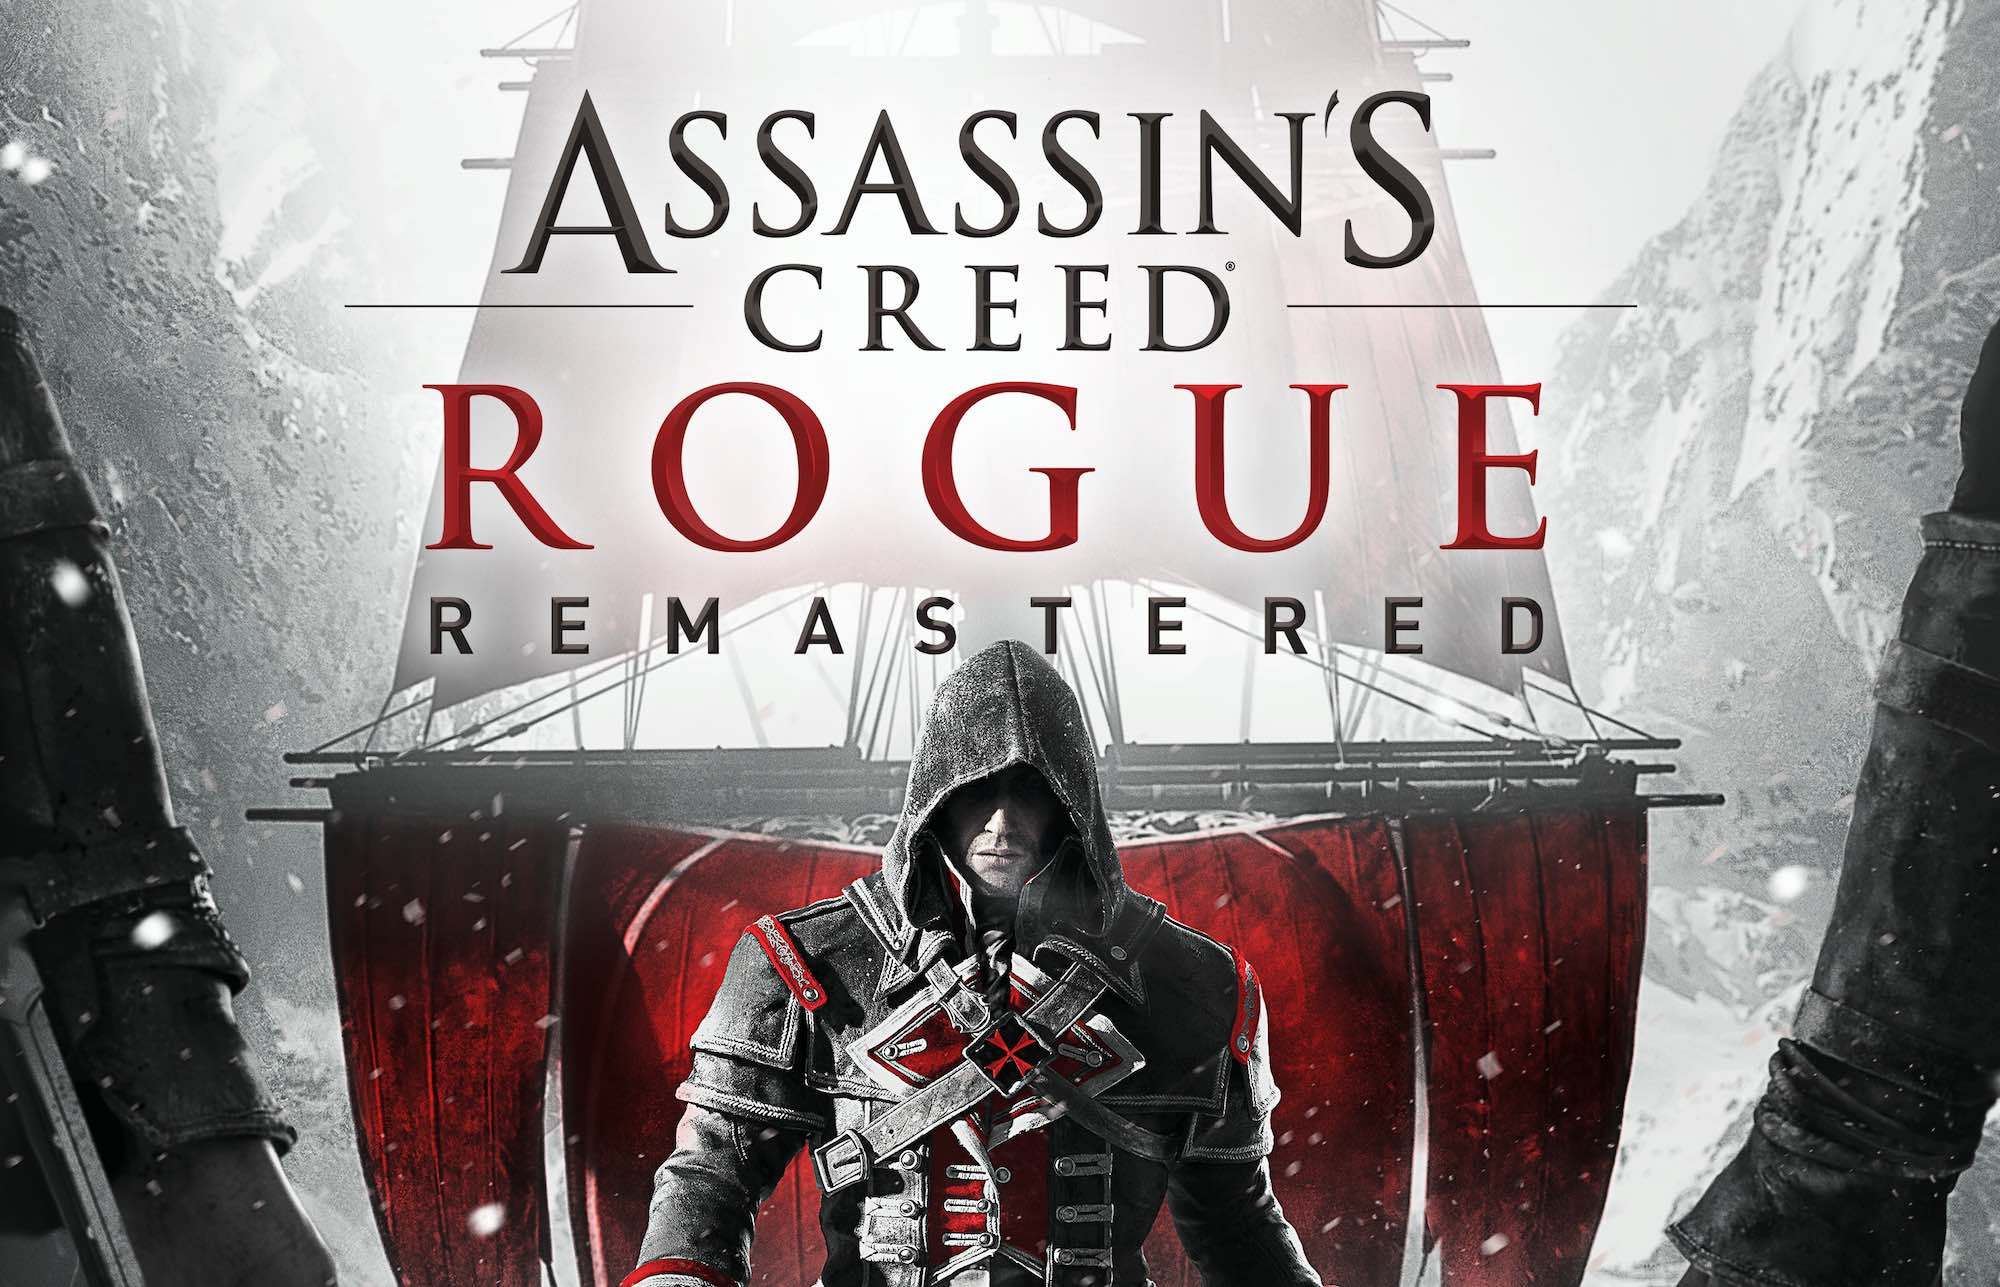 Assassin's Creed Rogue Remastered announced for Xbox One, PS4